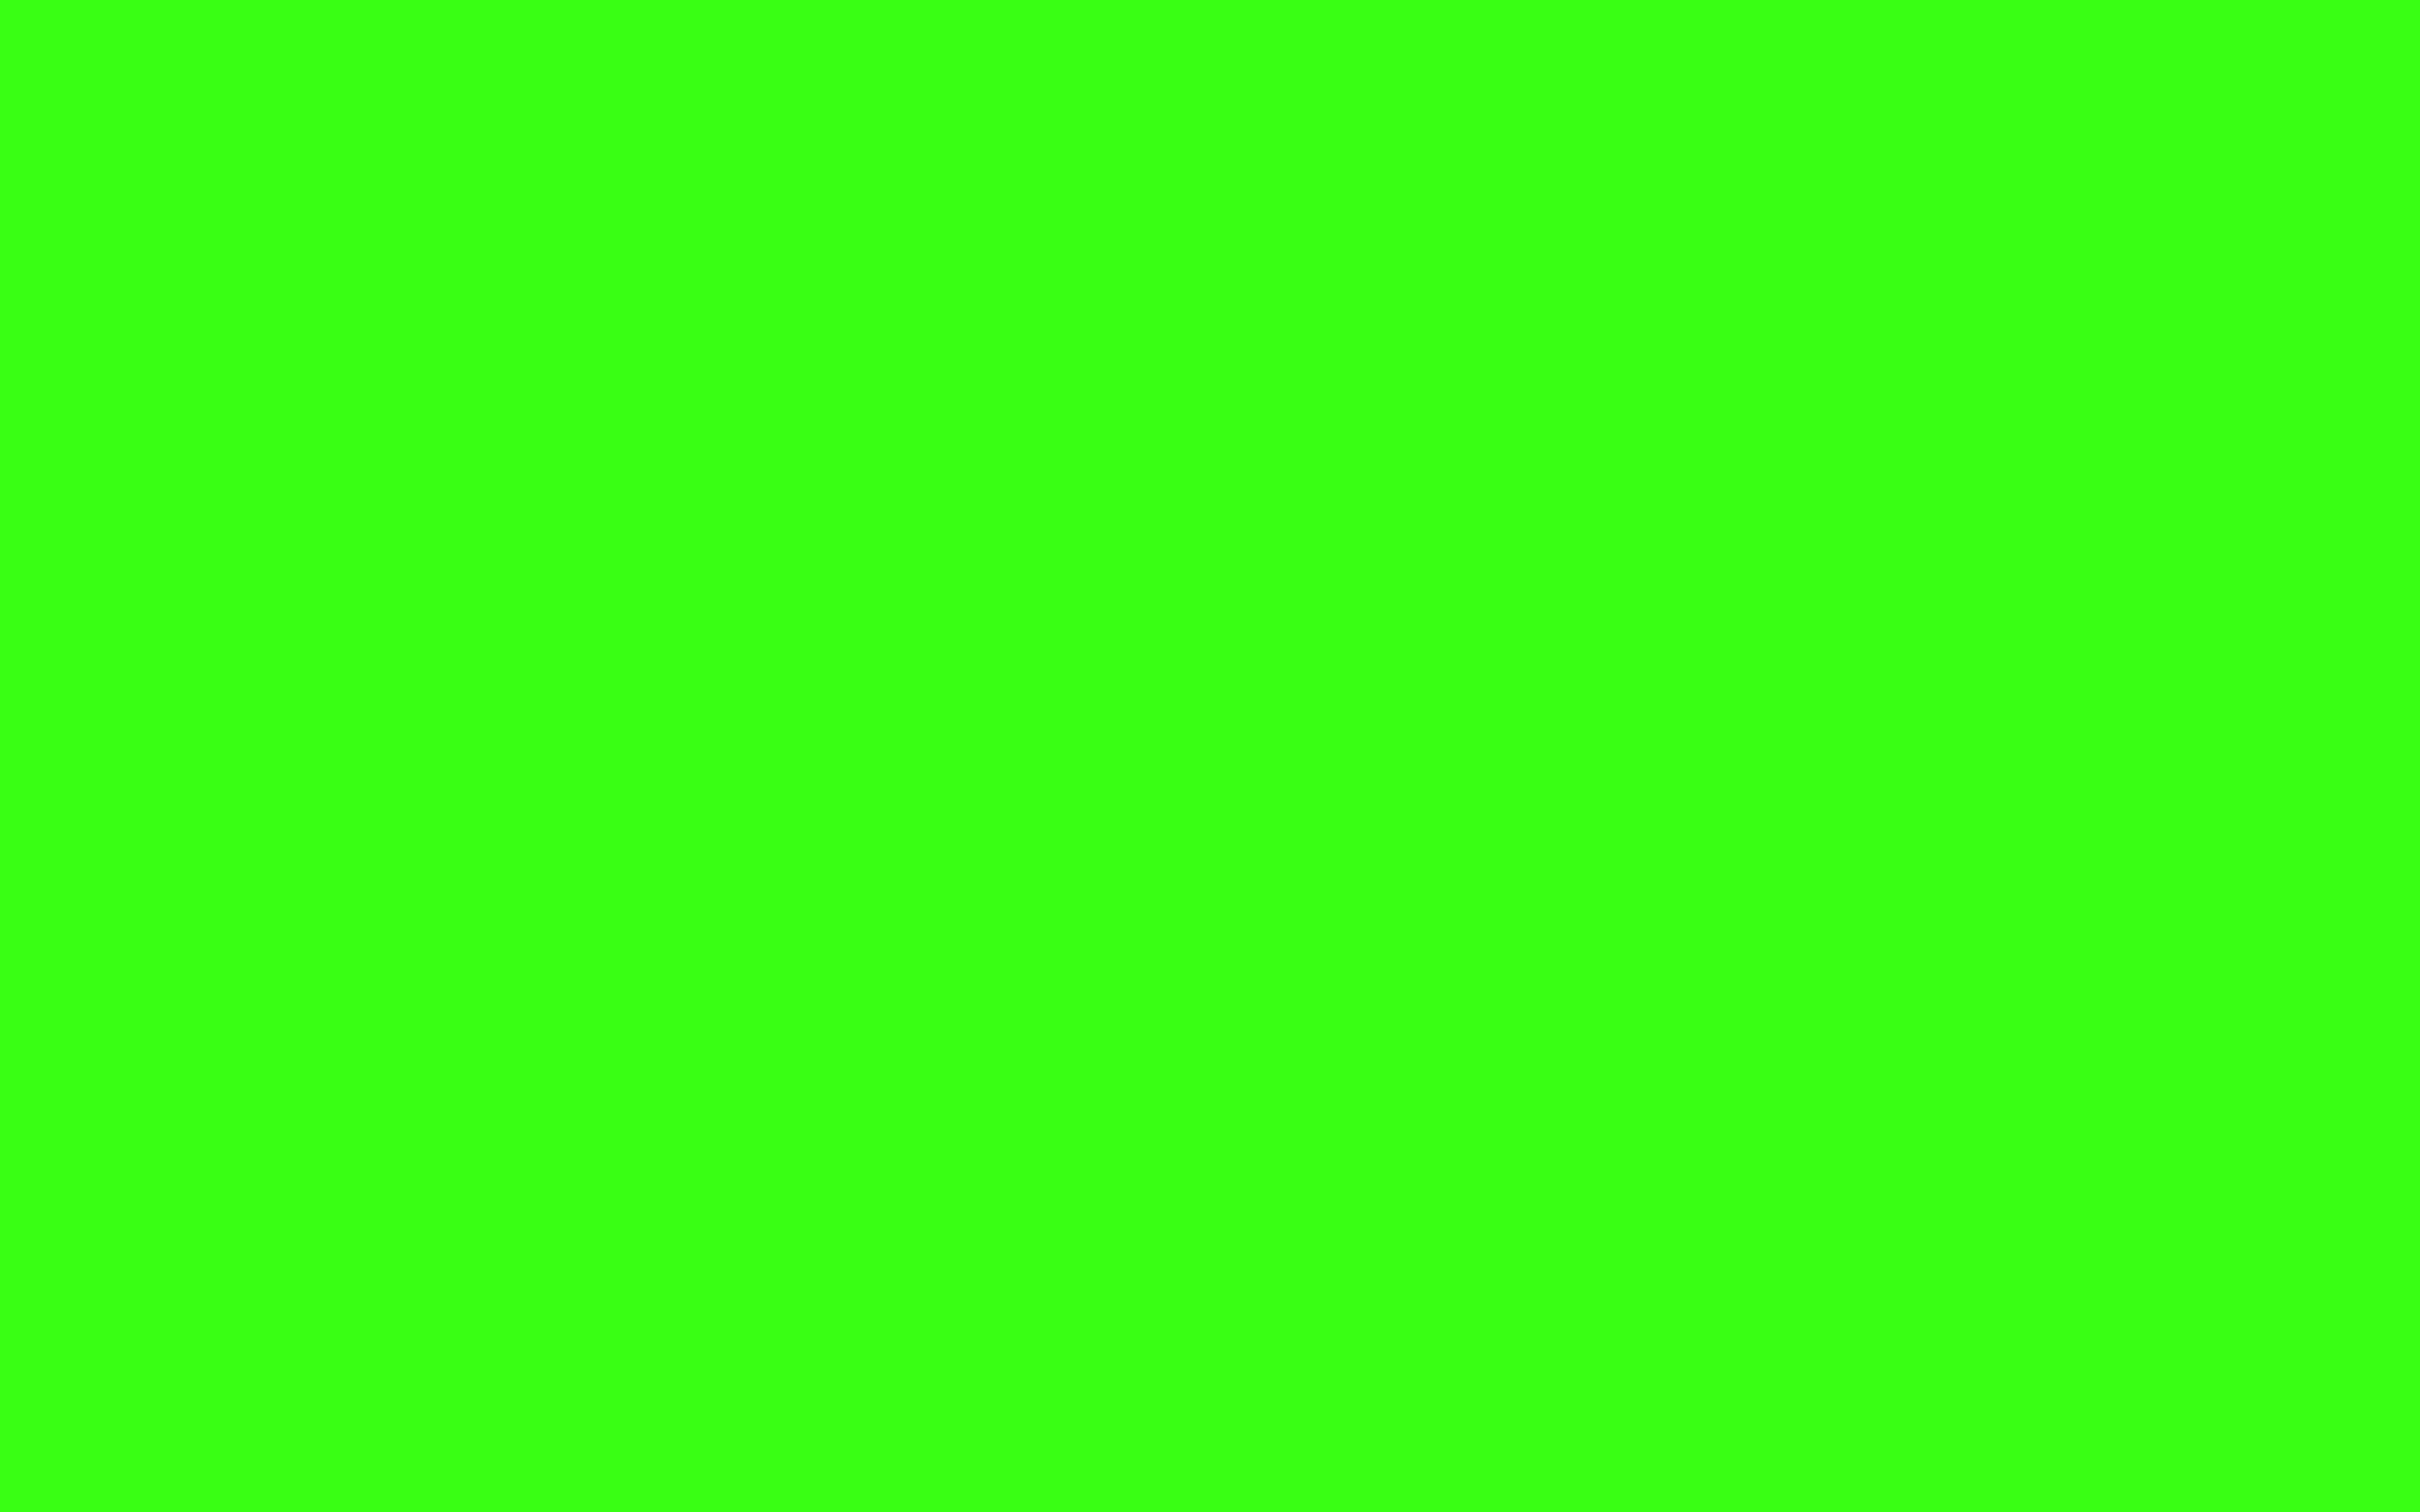 2560x1600 resolution Neon Green solid color background view and 2560x1600